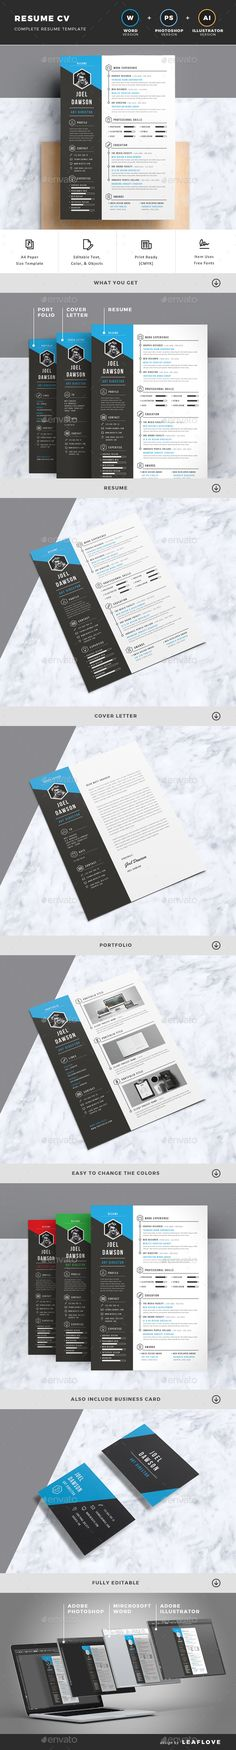 Resume by LeafLove Resume CV is a professional, clean, & creative resume template designed to make a good impression. Microsoft Word Resume Template, College Resume Template, Simple Resume Template, Resume Design Template, Creative Resume Templates, Cv Template, Cv Web, Create Business Cards, Marketing Words